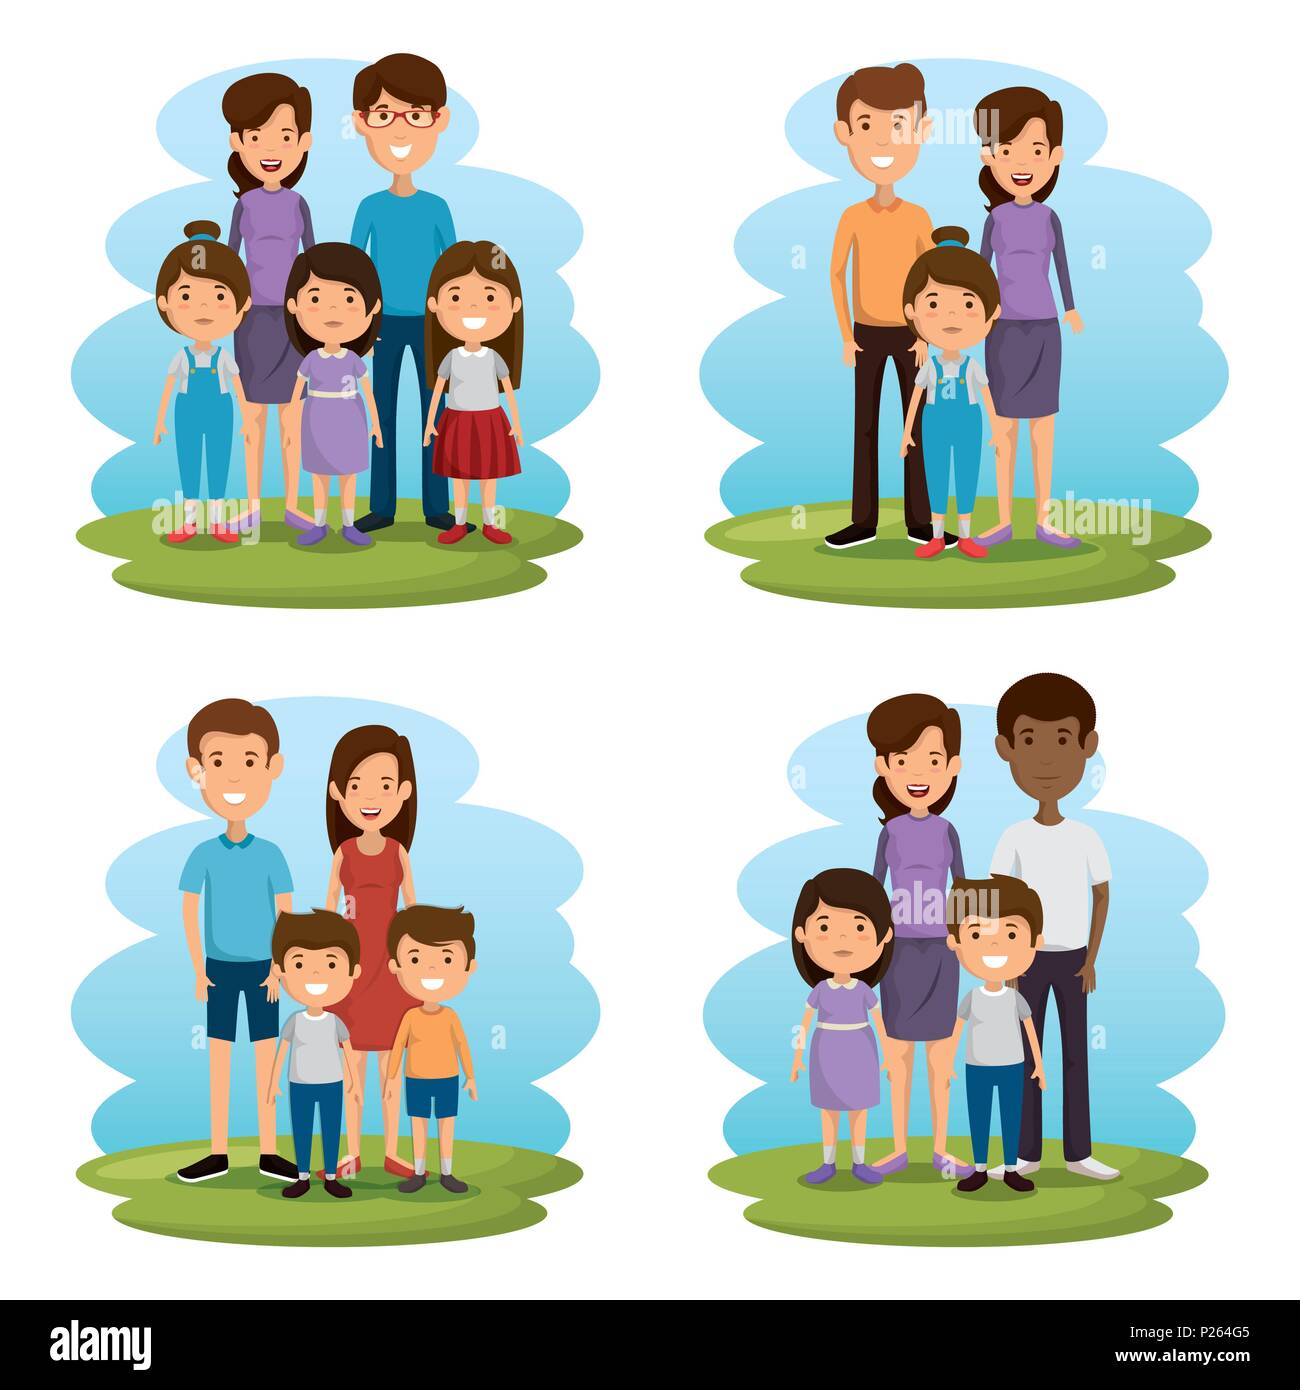 group of family members avatars characters - Stock Image